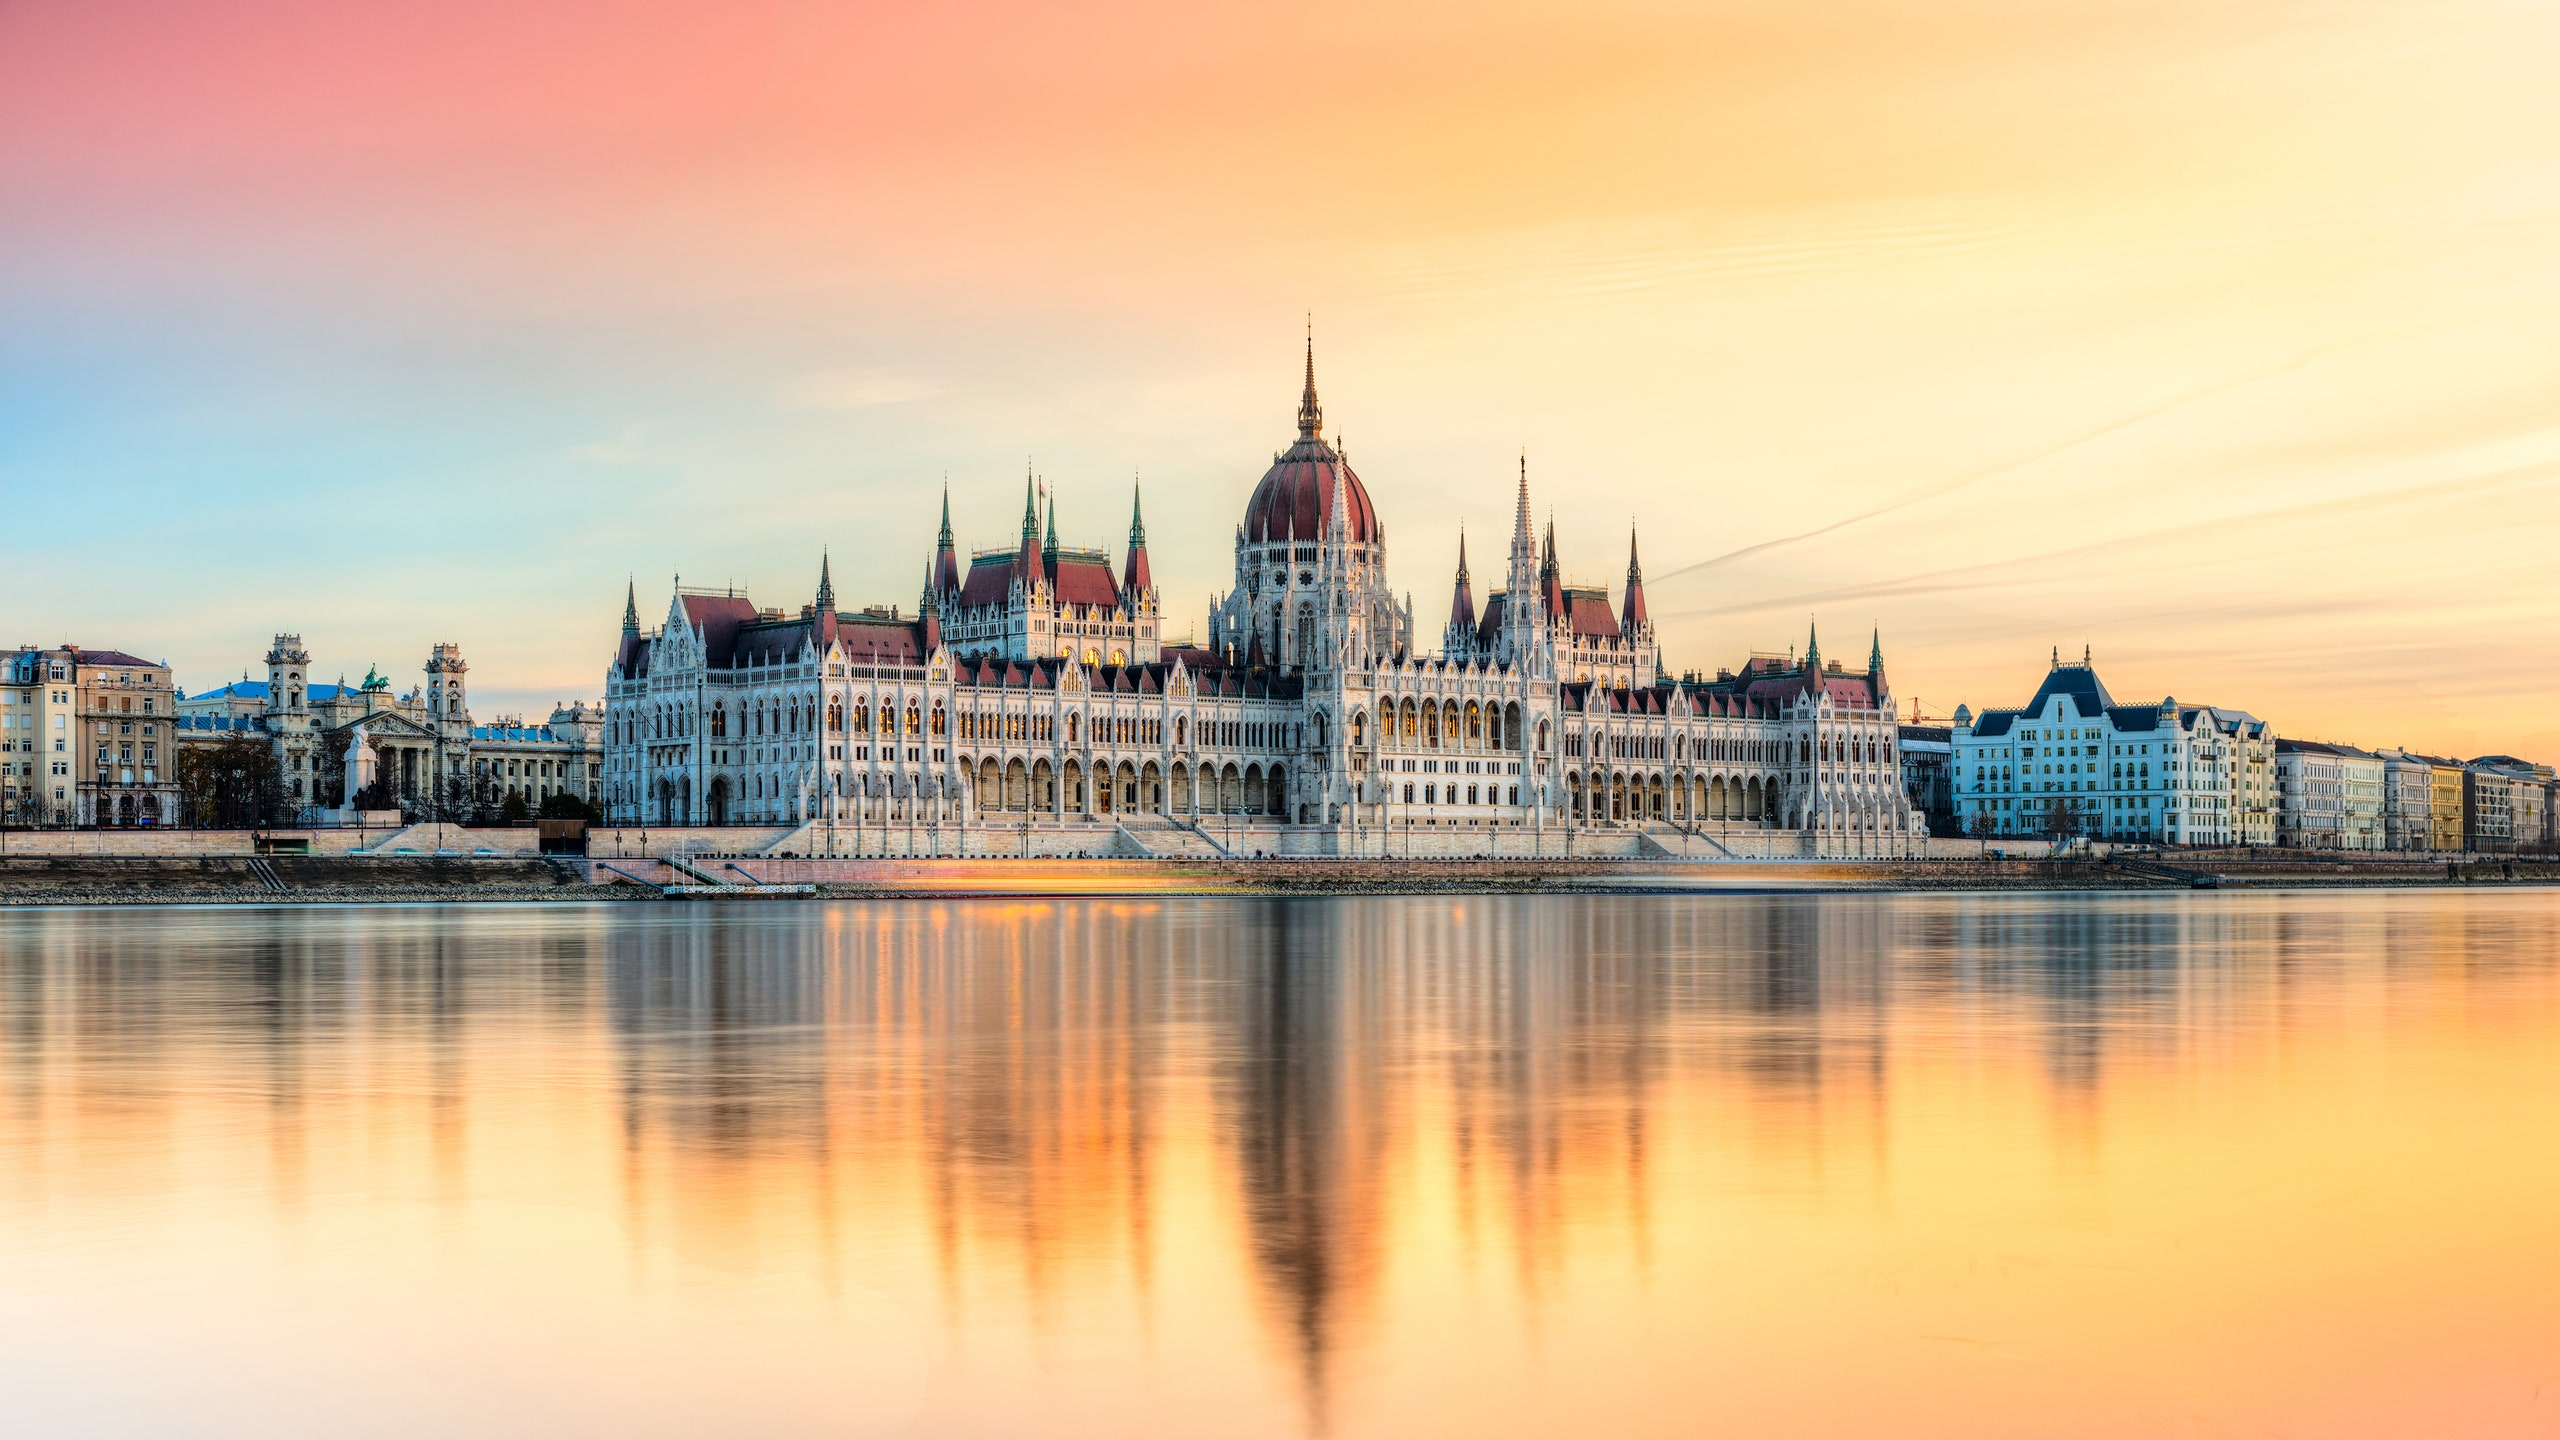 budapest_gettyimages-512278610